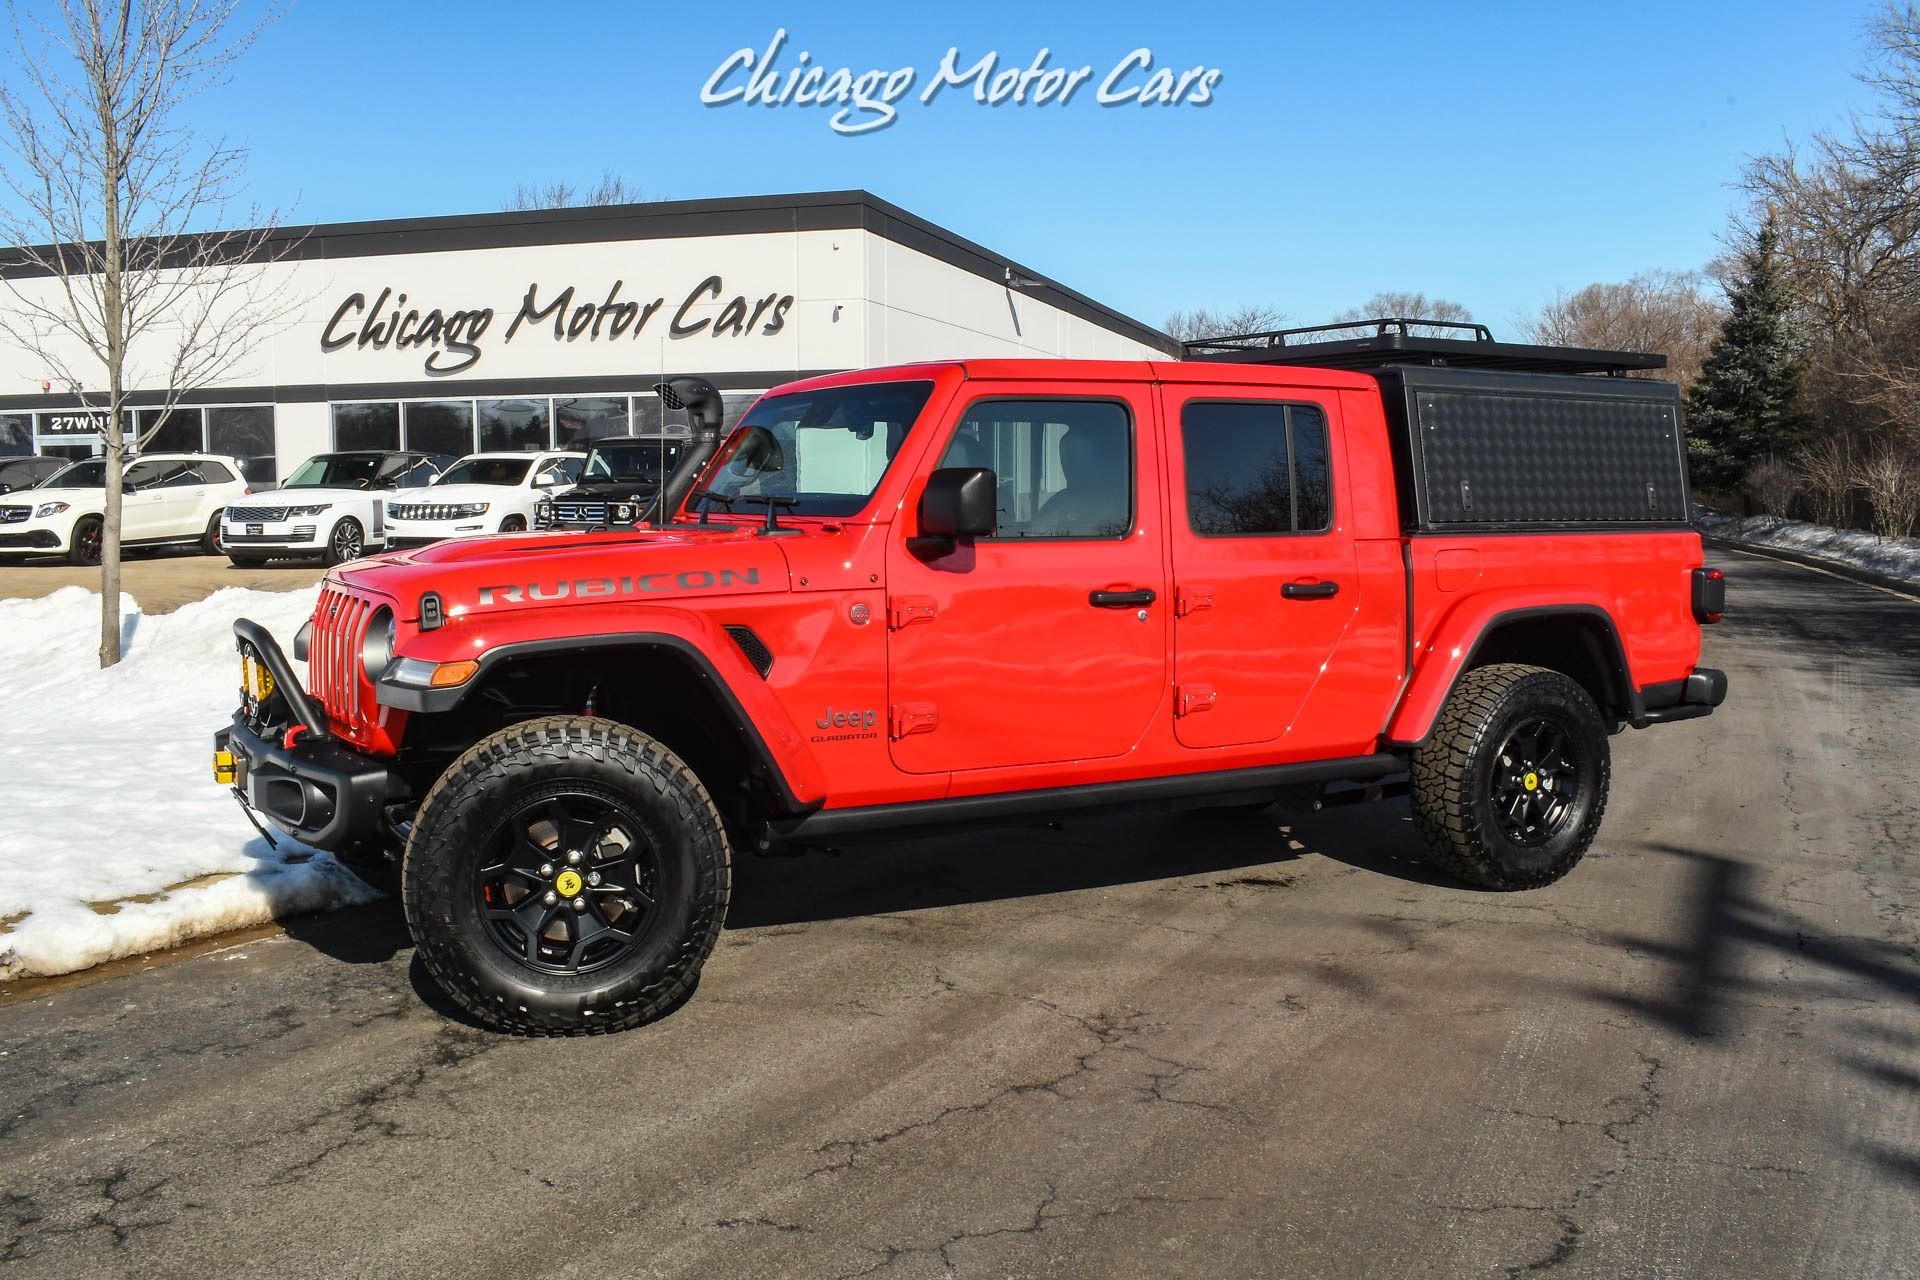 Used-2020-Jeep-Gladiator-Rubicon-Launch-Edition-62kMSRP-OVER-15k-in-Upgrades-Overlanding-Setup